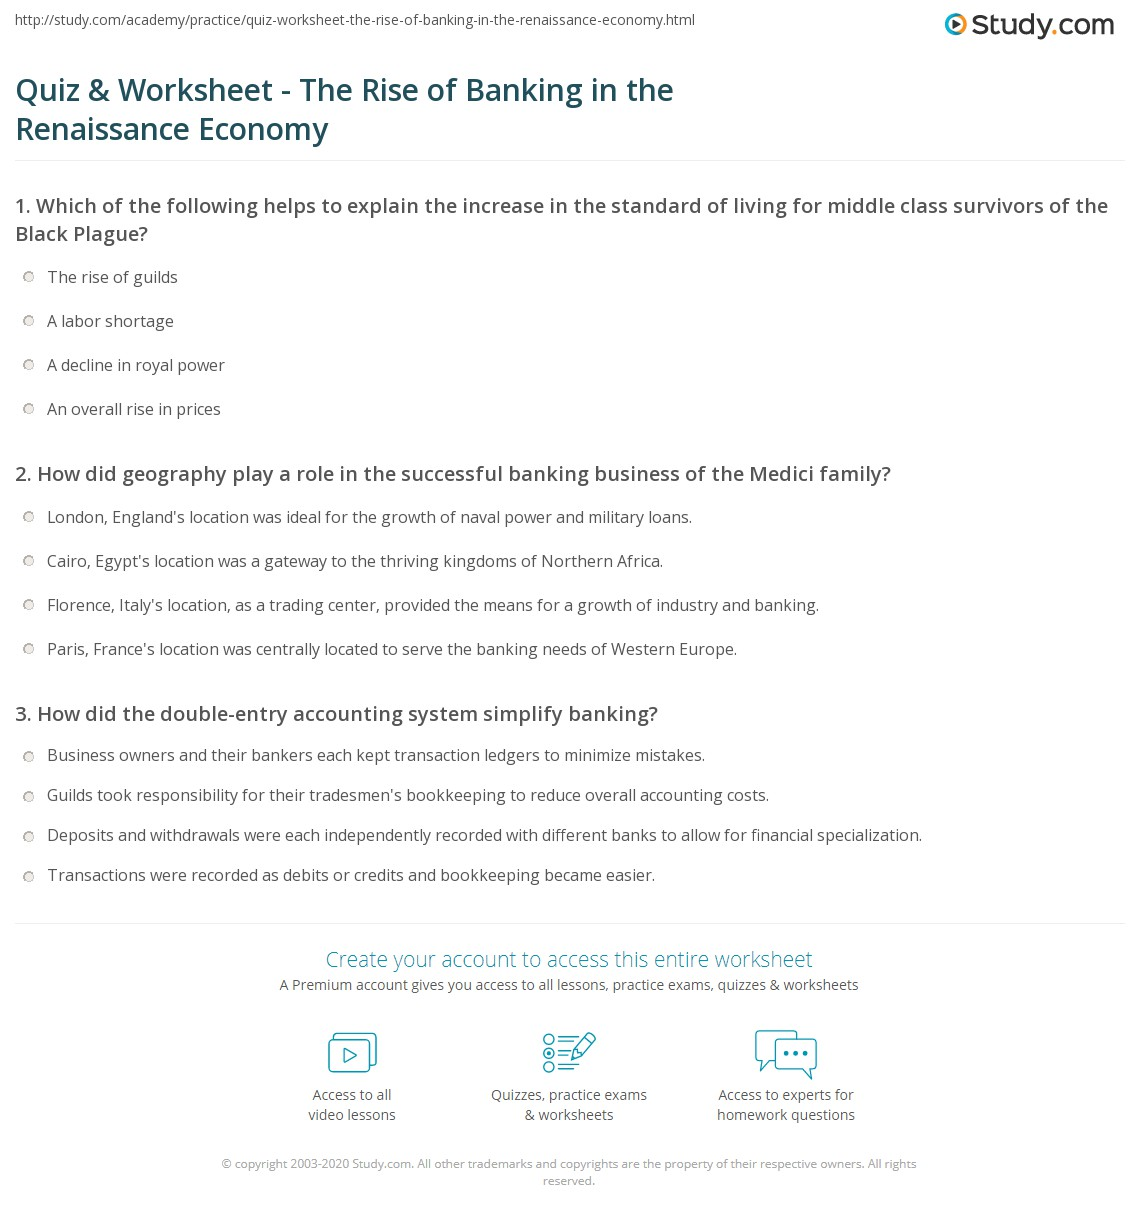 quiz worksheet the rise of banking in the renaissance economy. Black Bedroom Furniture Sets. Home Design Ideas